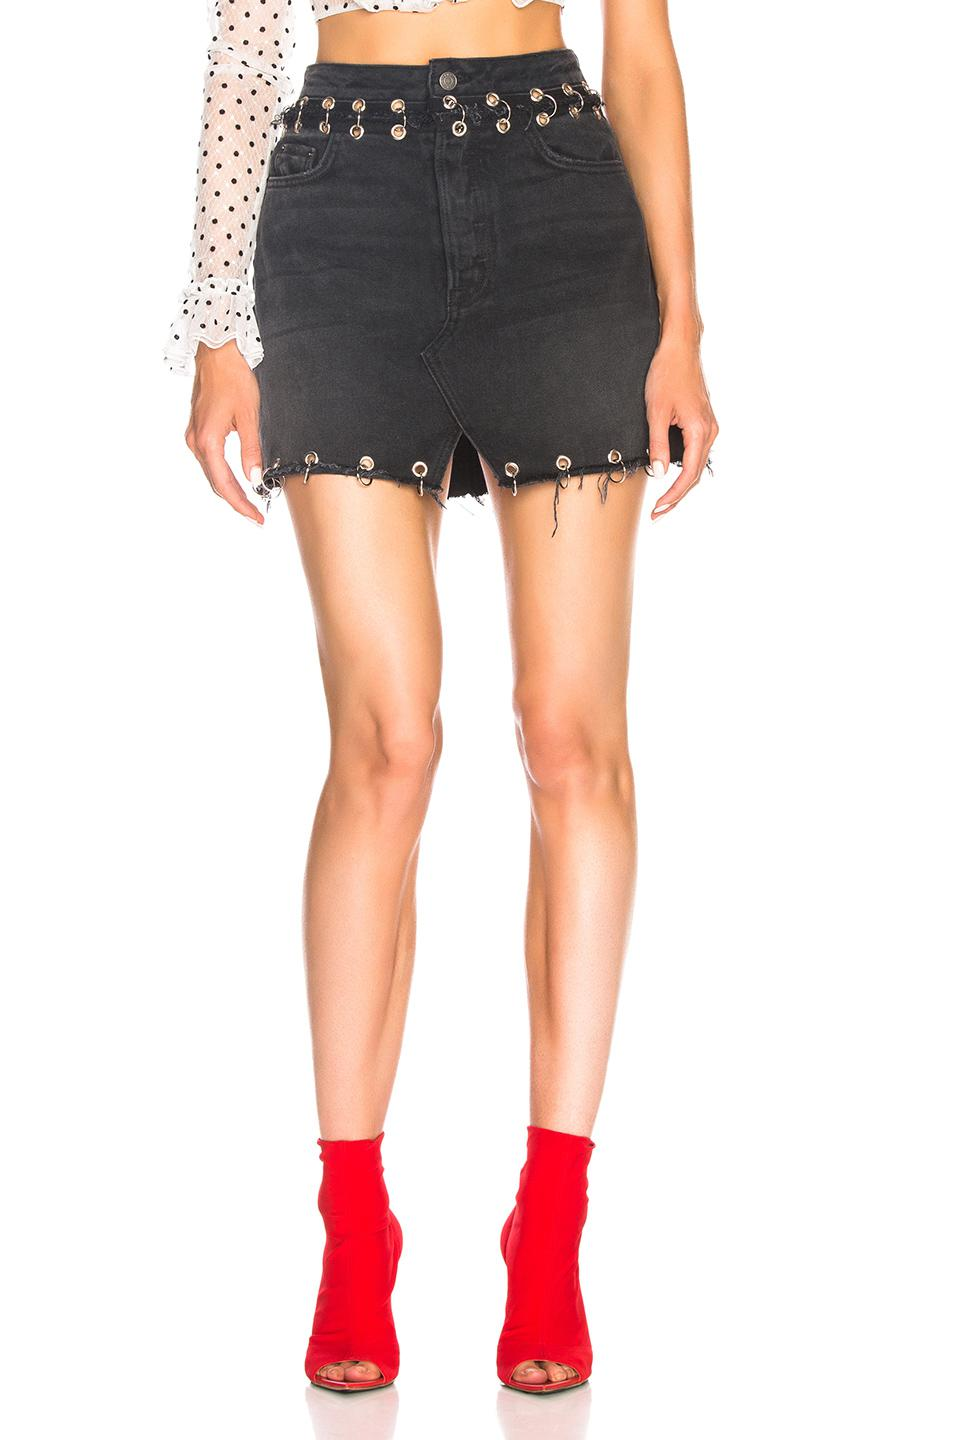 Outlet Footlocker 100% Authentic Cheap Price Milla High Rise Denim Skirt in Black GRLFRND Cheap Sale New Styles Free Shipping The Cheapest ED02S